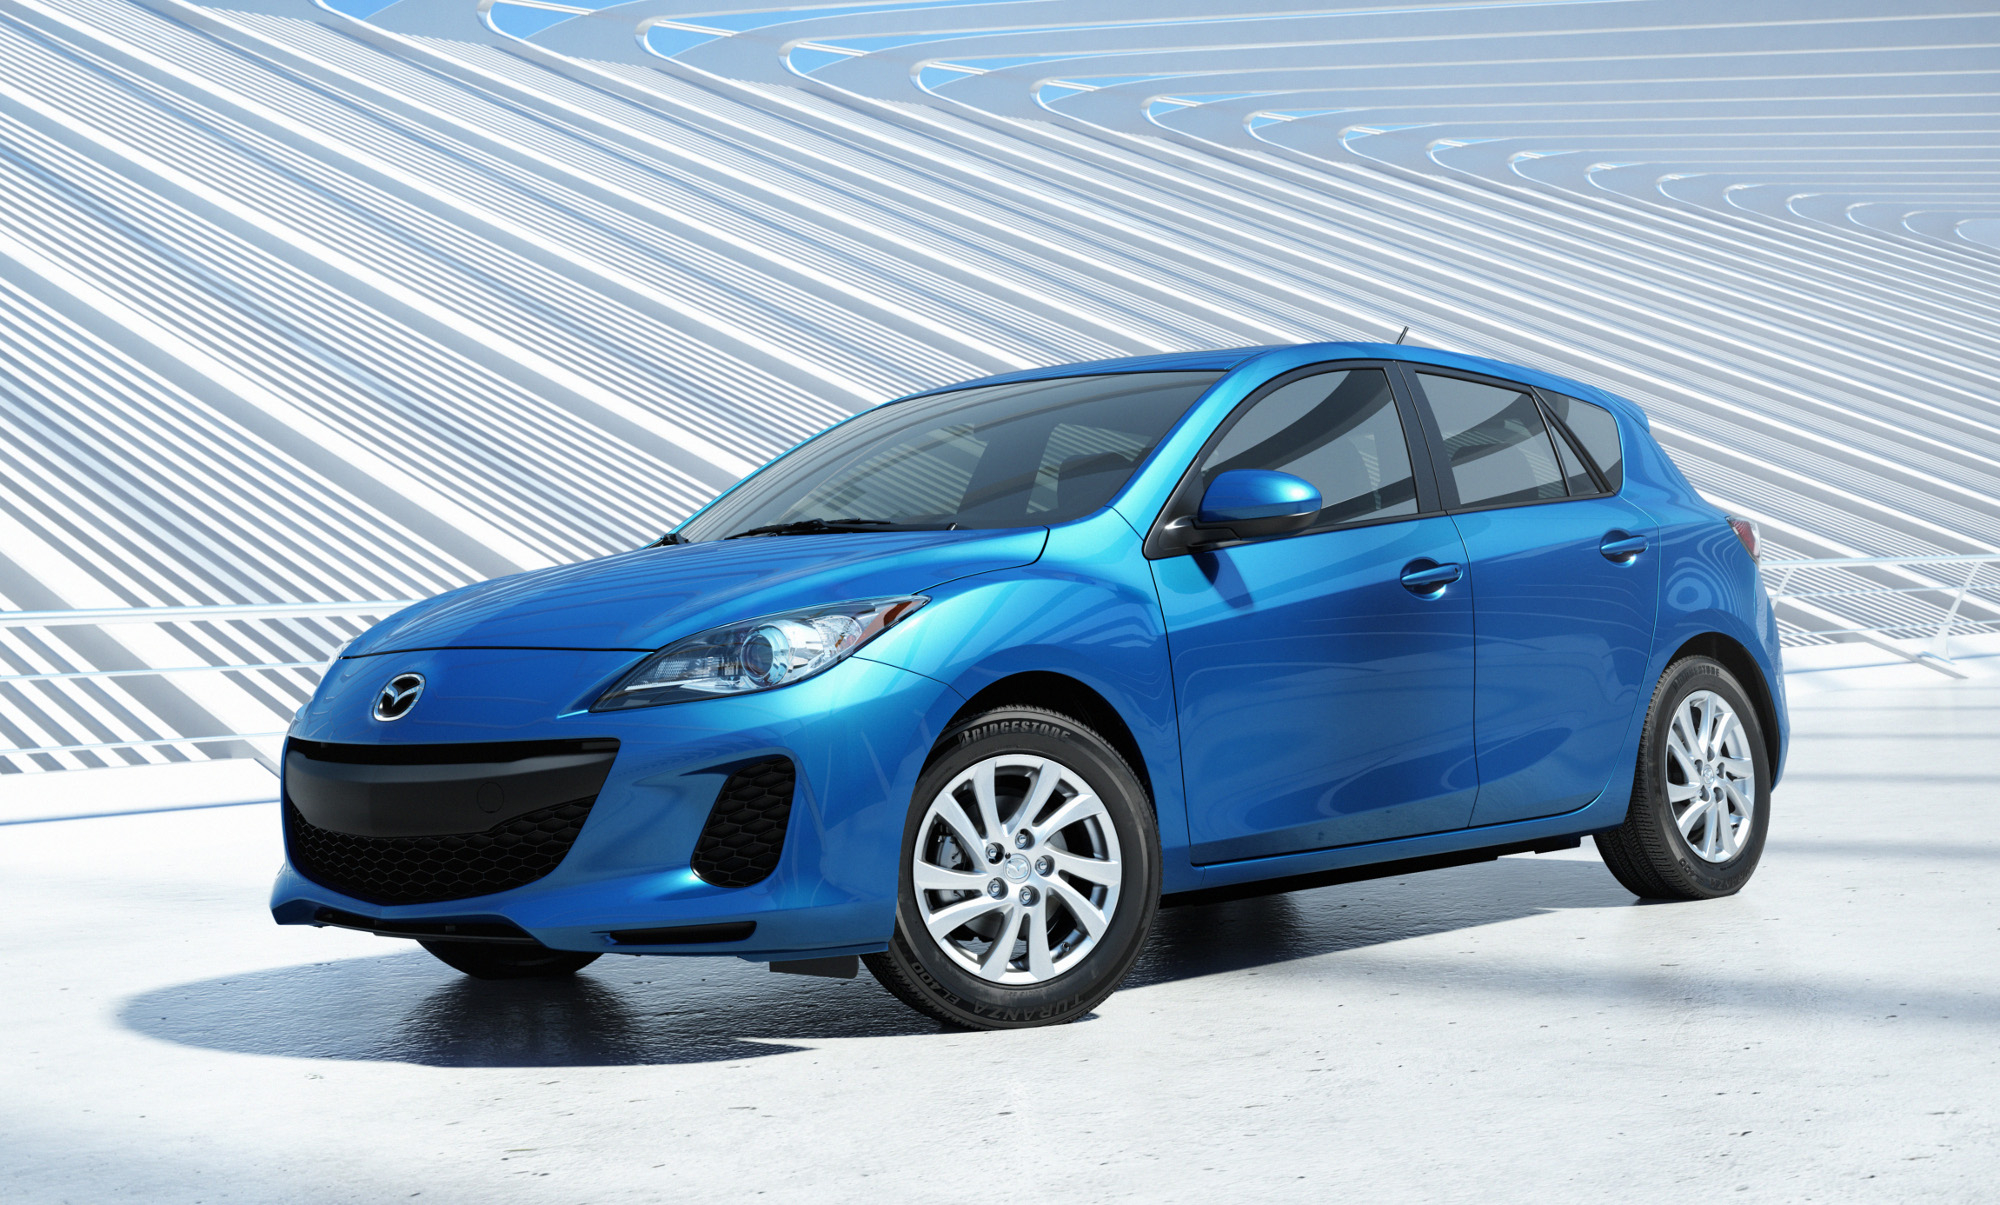 2012 Mazda Mazda3 Review Ratings Specs Prices And